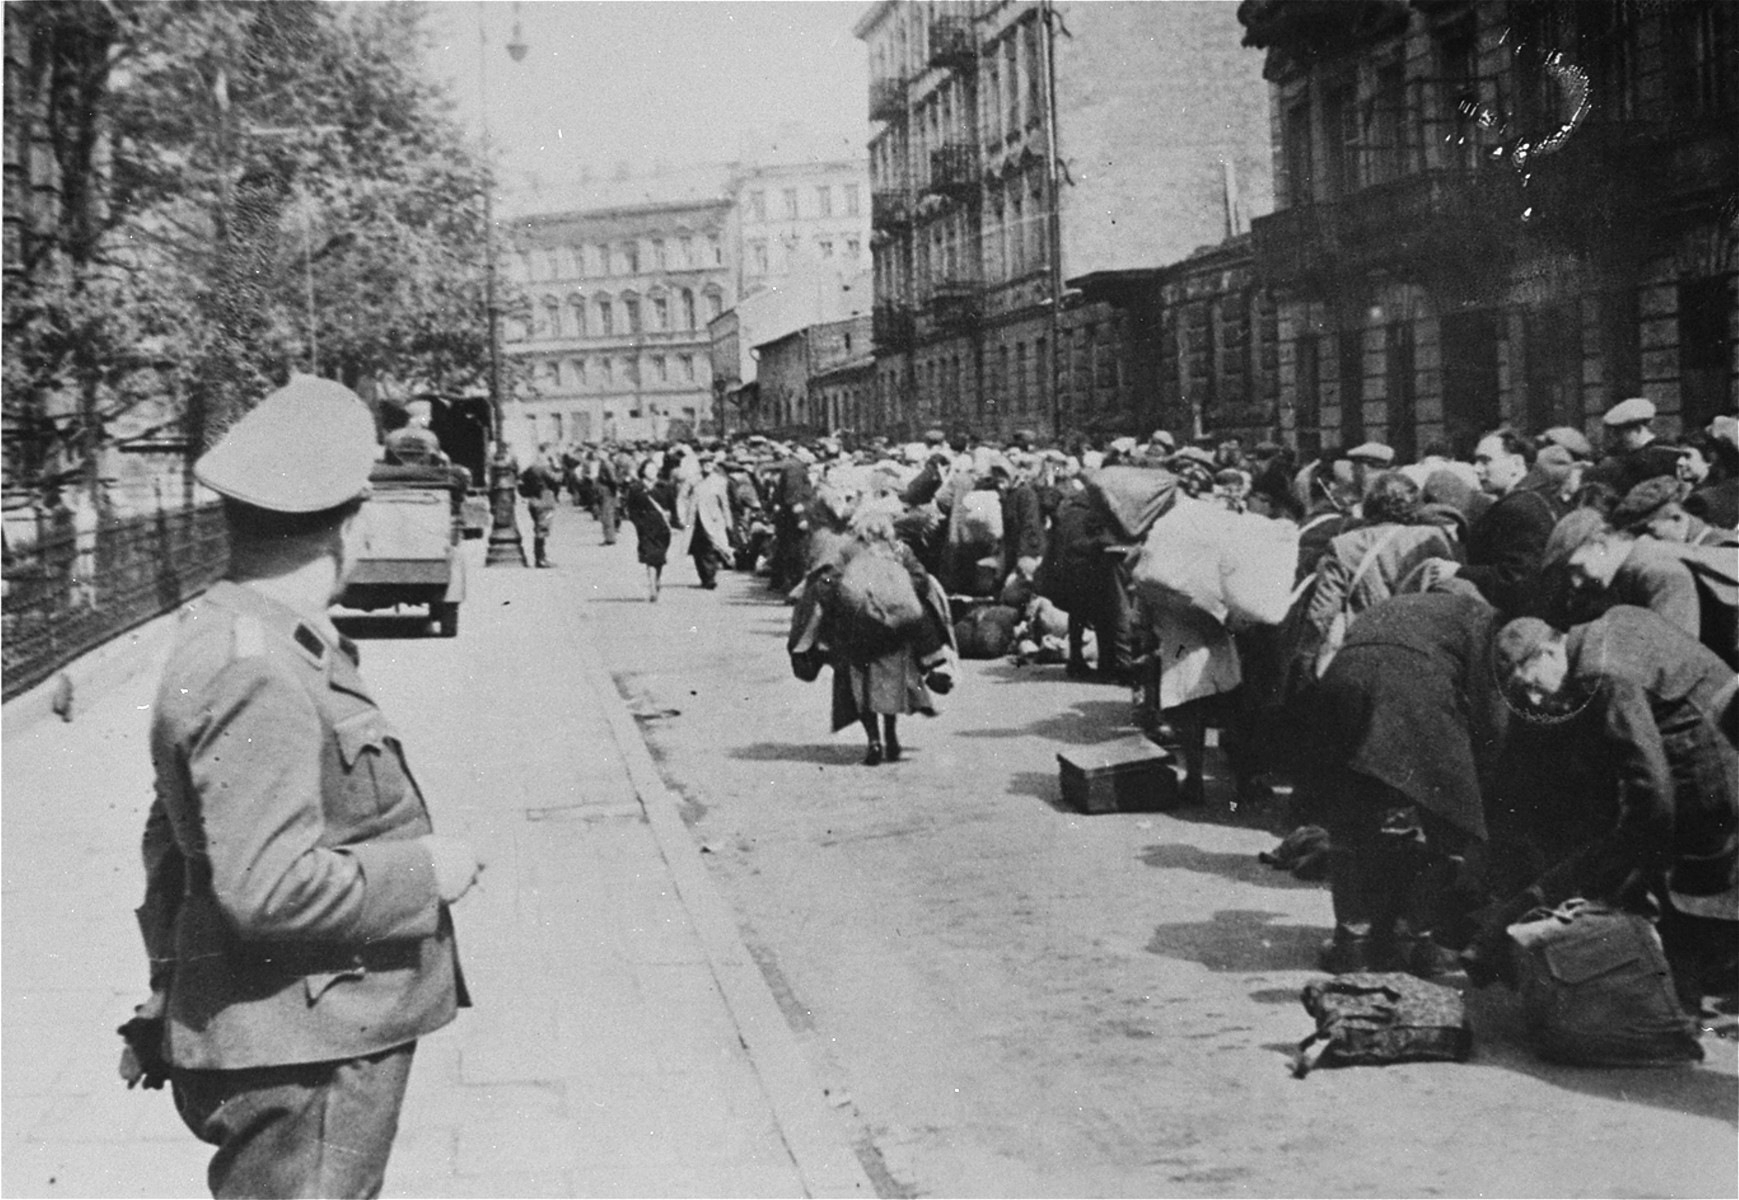 A long column of Jews who have been rounded-up for deportation walk with their luggage along a street in the Warsaw ghetto.